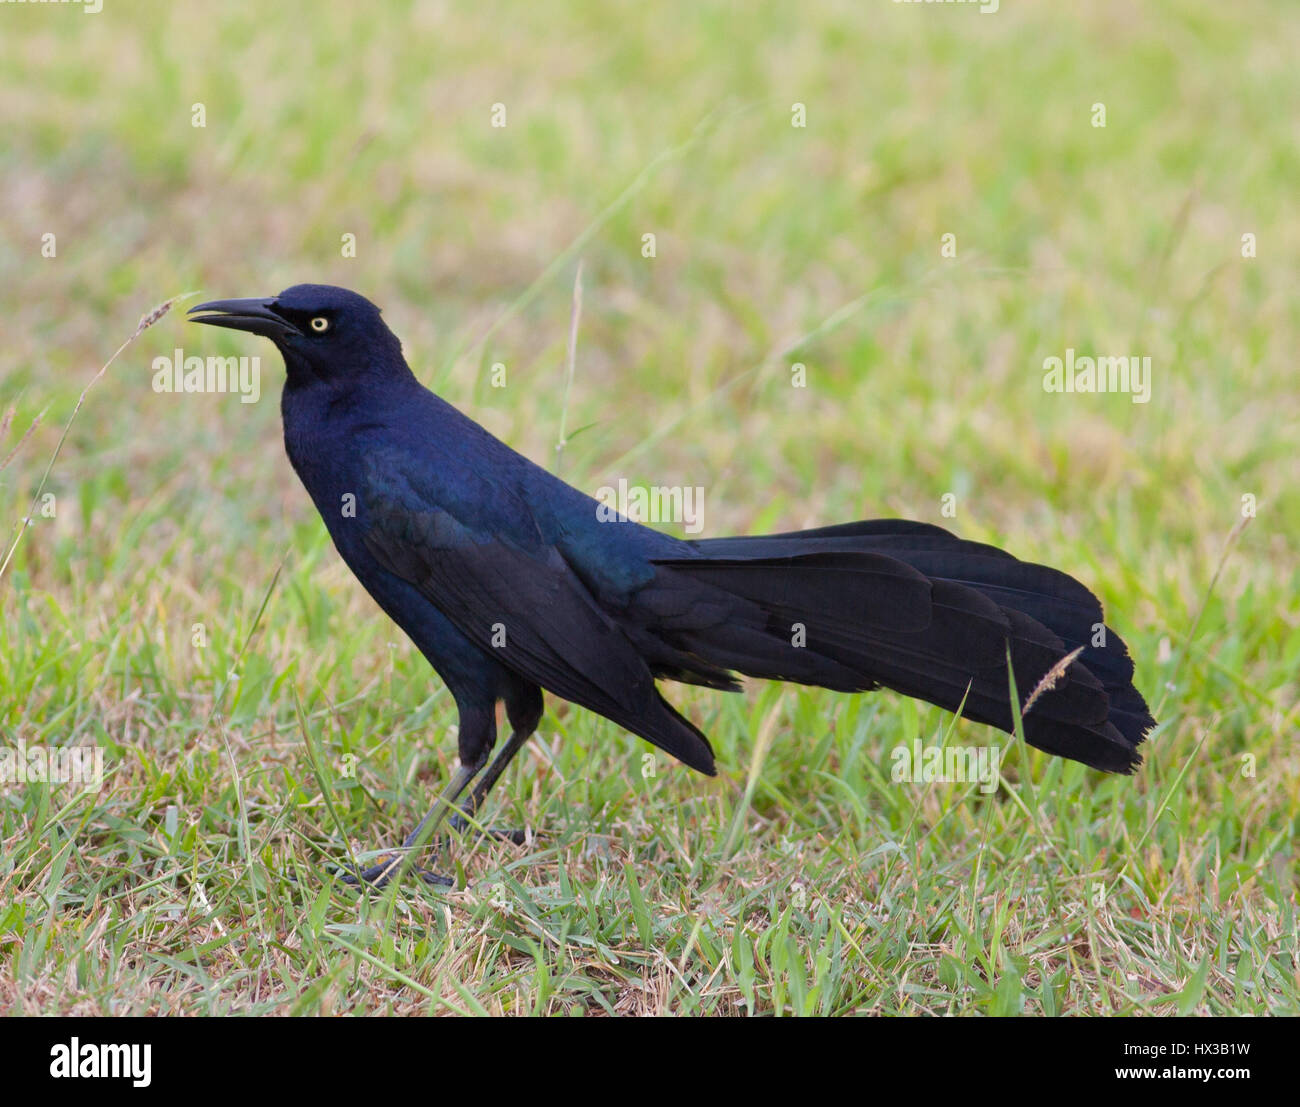 Male Great-tailed Grackle (Quiscalus mexicanus) Estero Llano Grande State Park, Weslaco, Texas - Stock Image